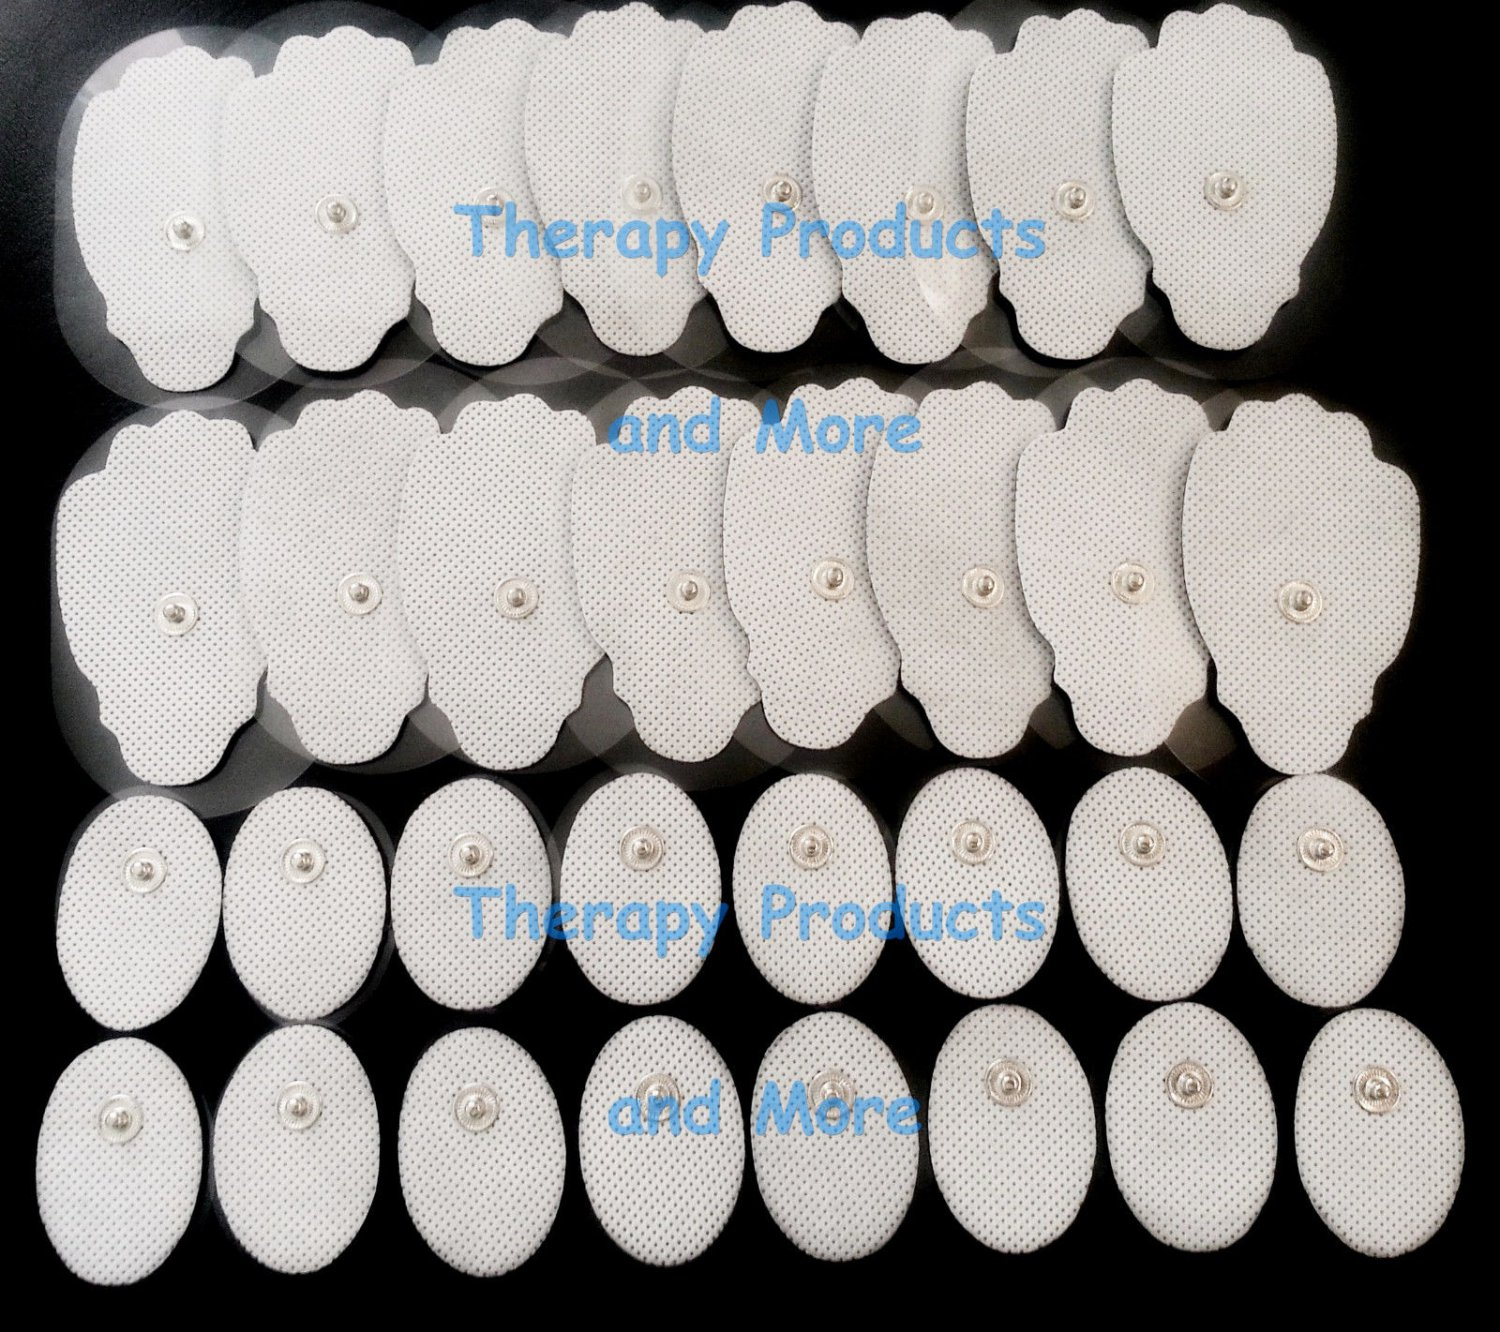 REPLACEMENT ELECTRODE PADS COMBO(16 LG + 16 SM OVAL)FOR PINOOK DIGITAL MASSAGERS